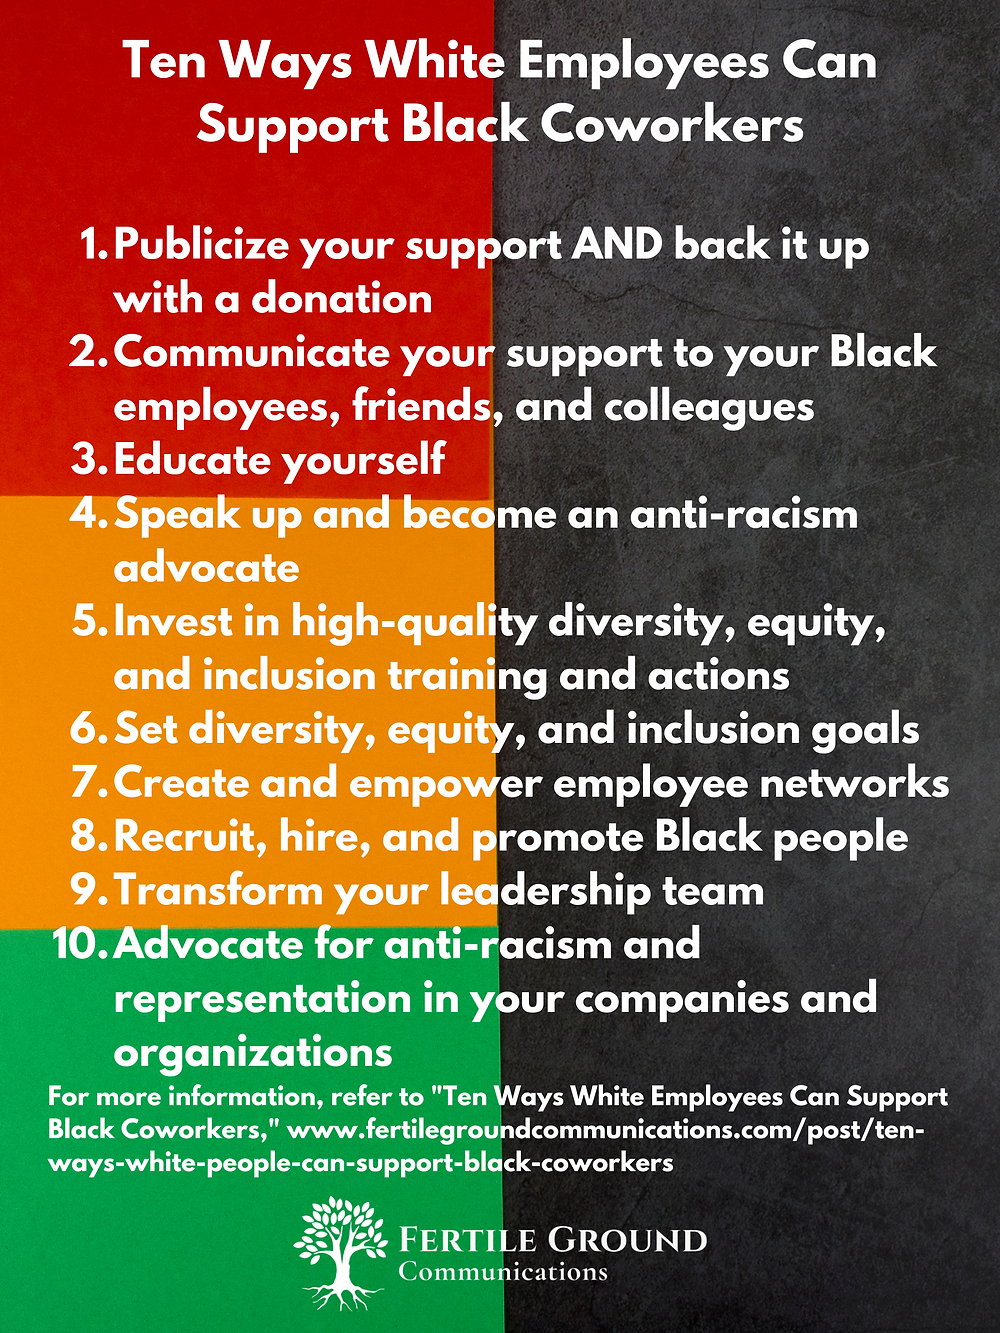 Ten Ways White Employees Can Support Black Coworkers